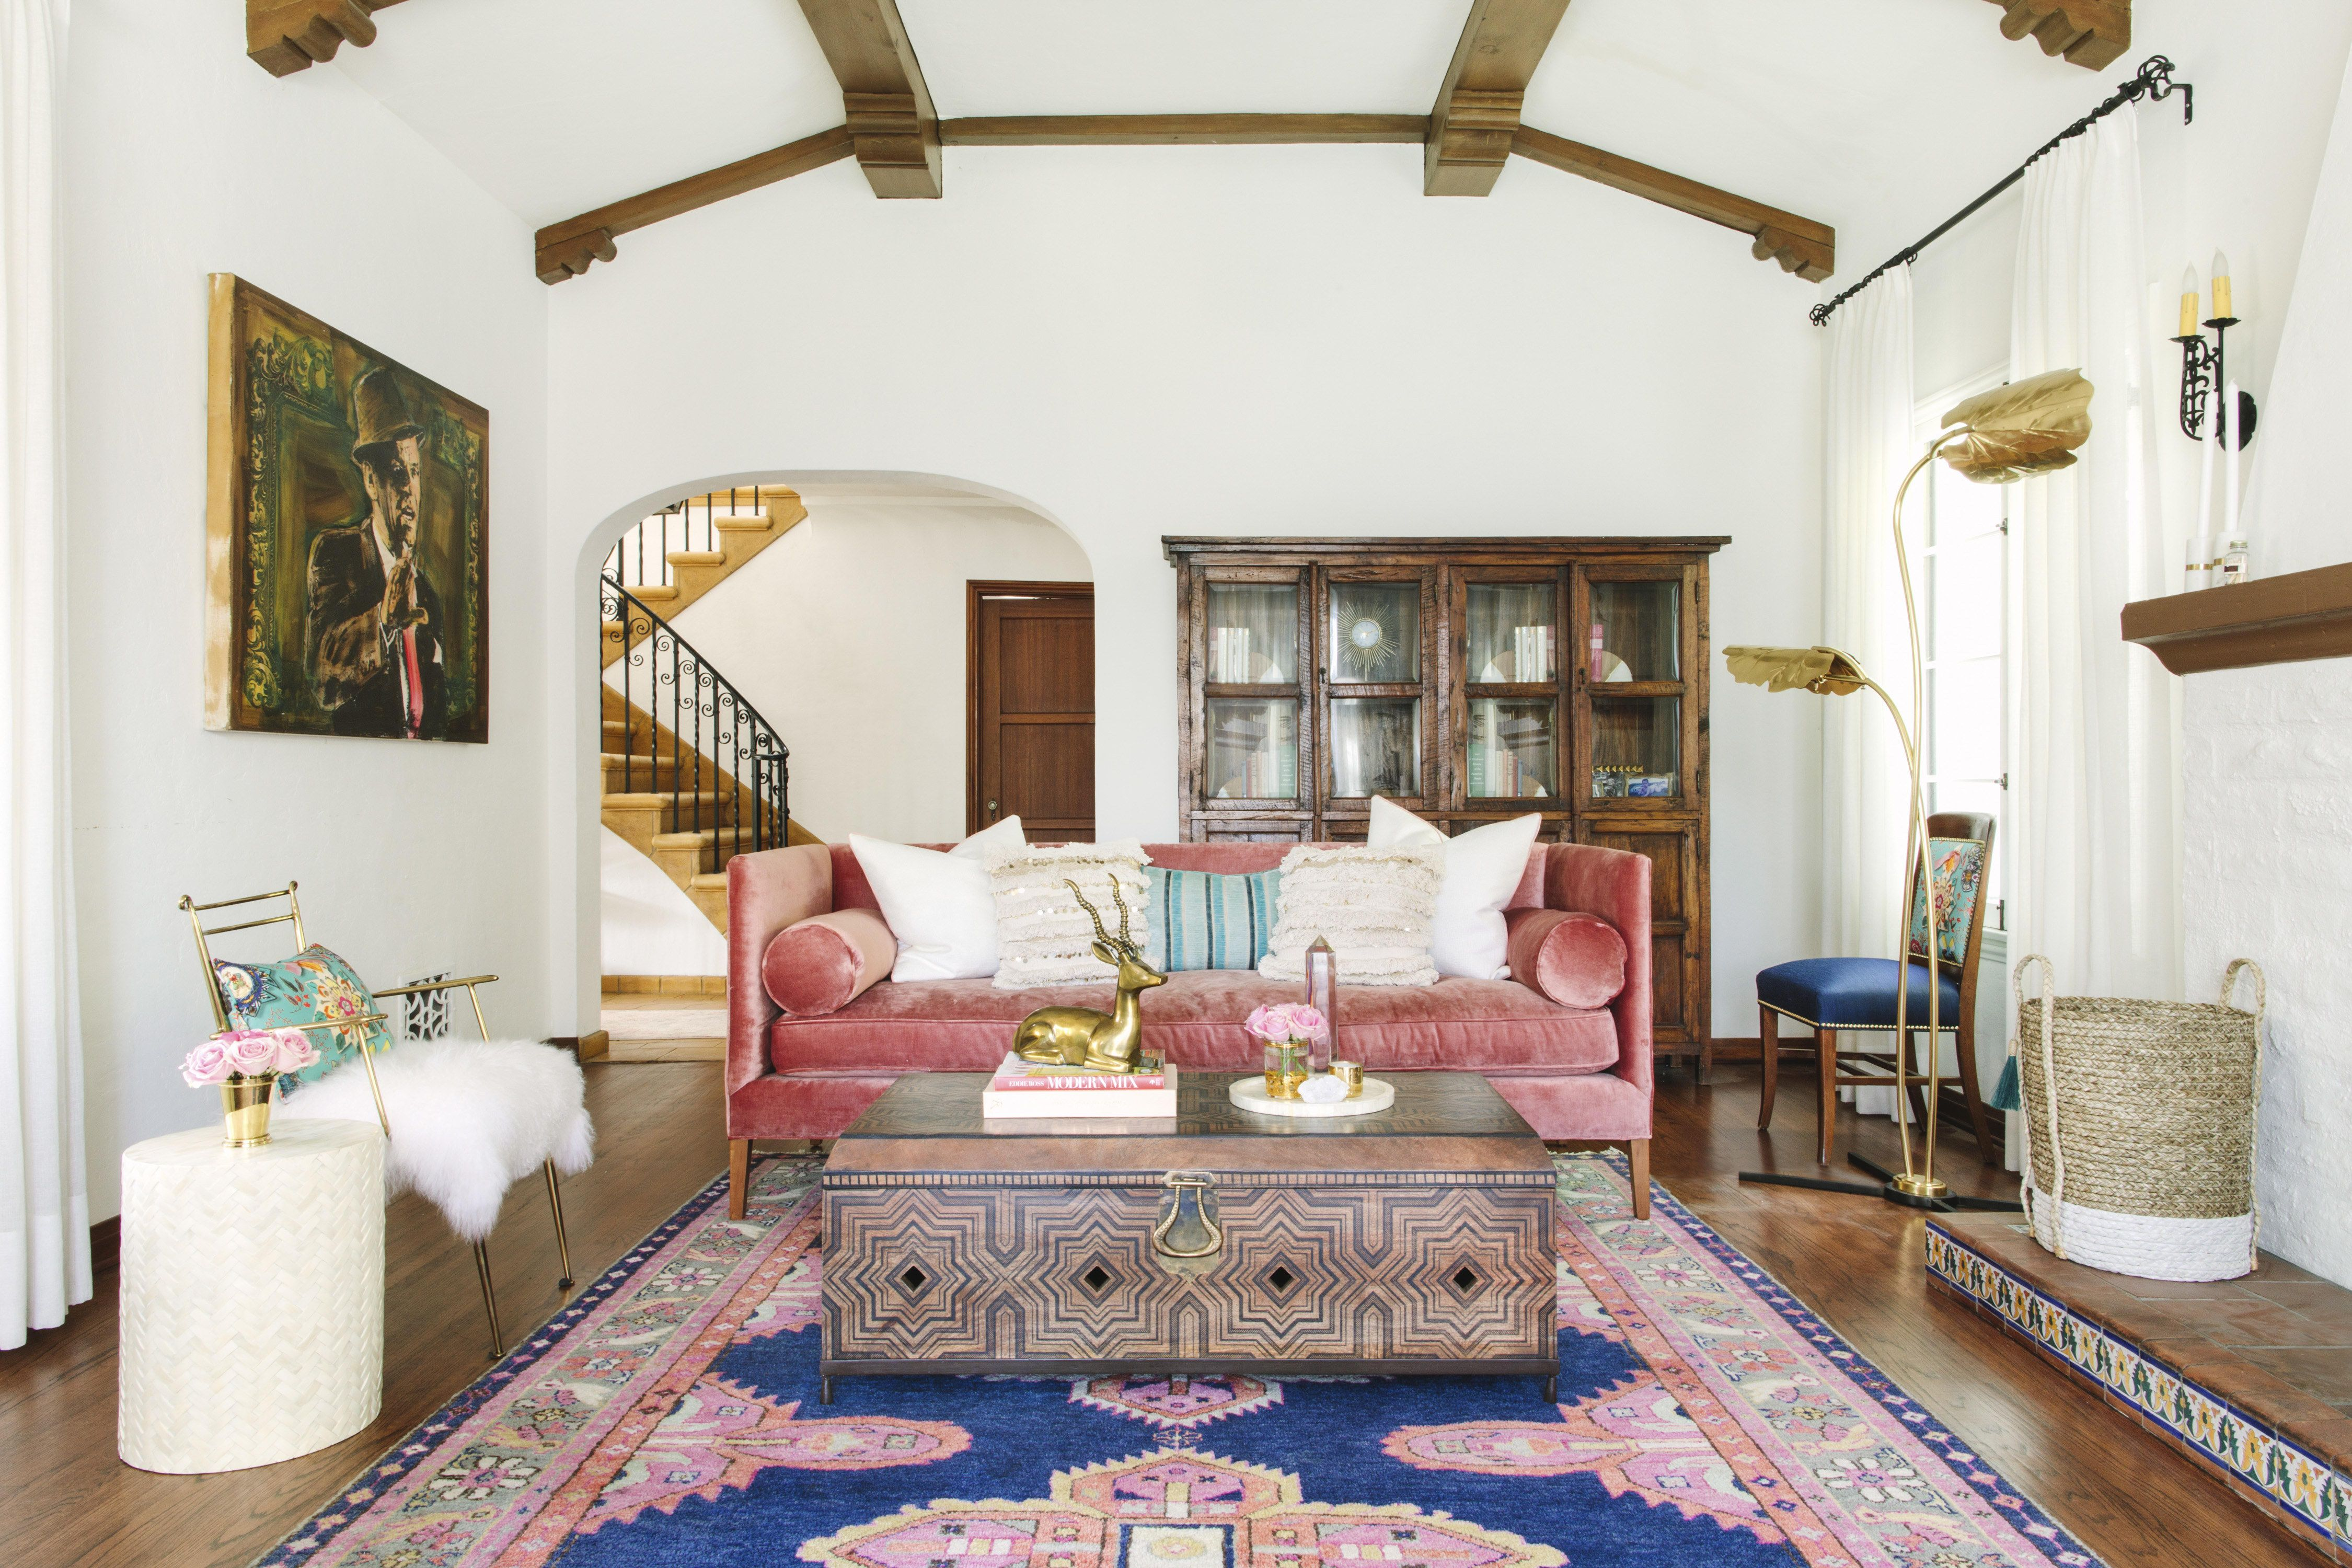 Spain Meets California In This Colorful La Home Diy Living Room Decor Best Living Room Design Small Living Room Design #spanish #living #room #decor